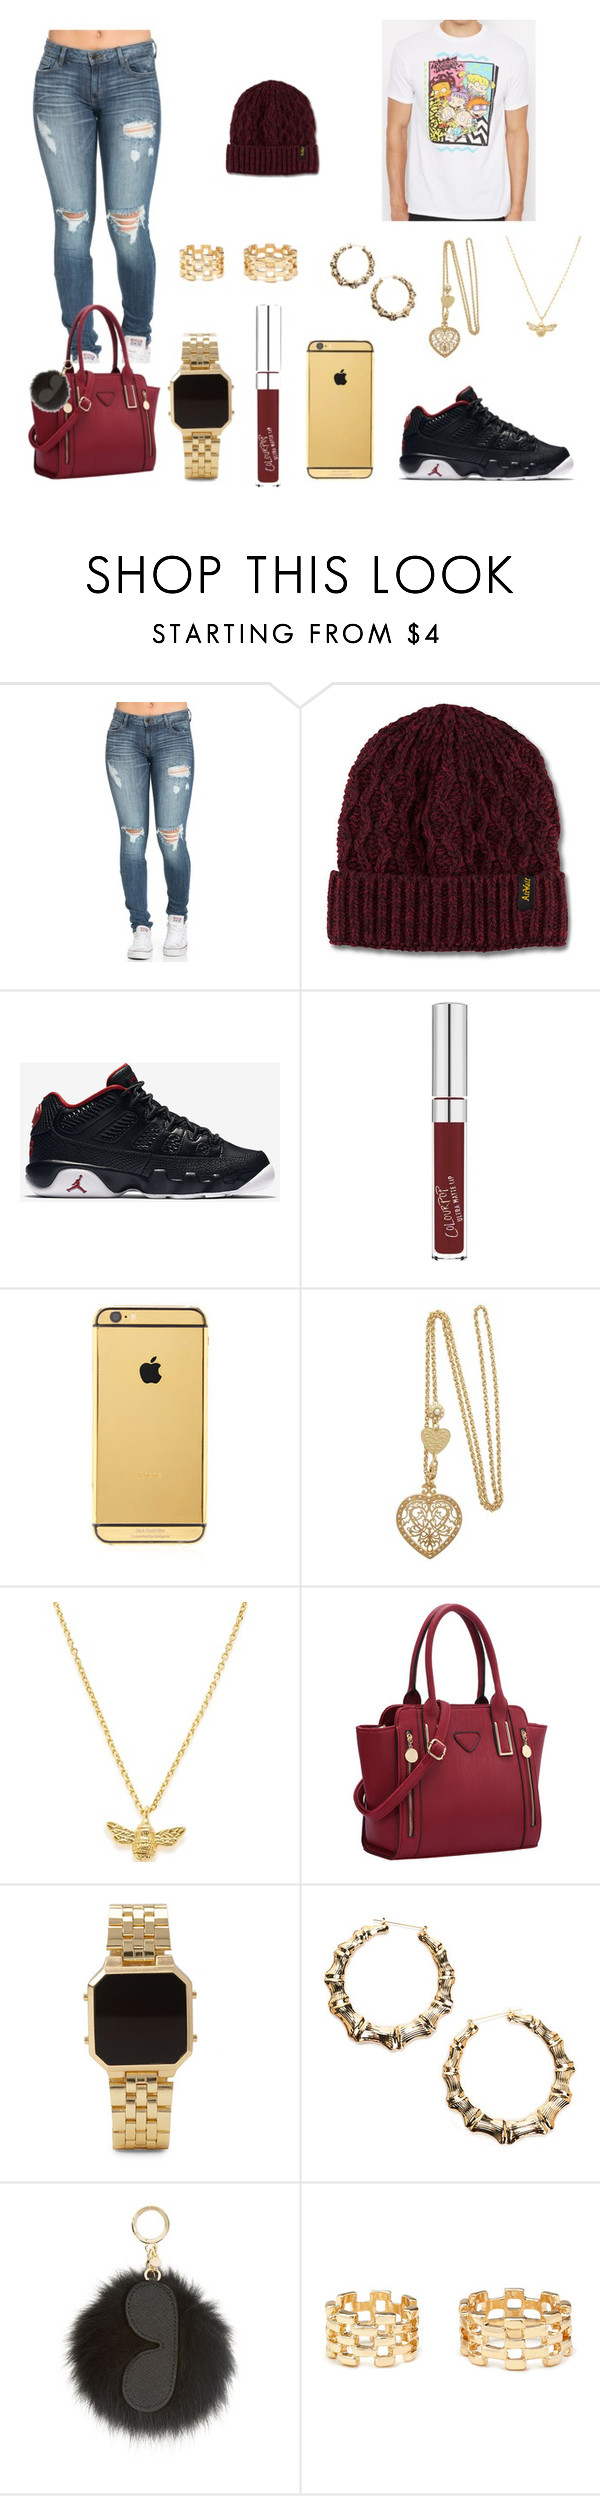 """""""Rugrats"""" by imanifashions ❤ liked on Polyvore featuring Dr. Martens, NIKE, Goldgenie, Estella Bartlett, Forever 21 and MICHAEL Michael Kors"""